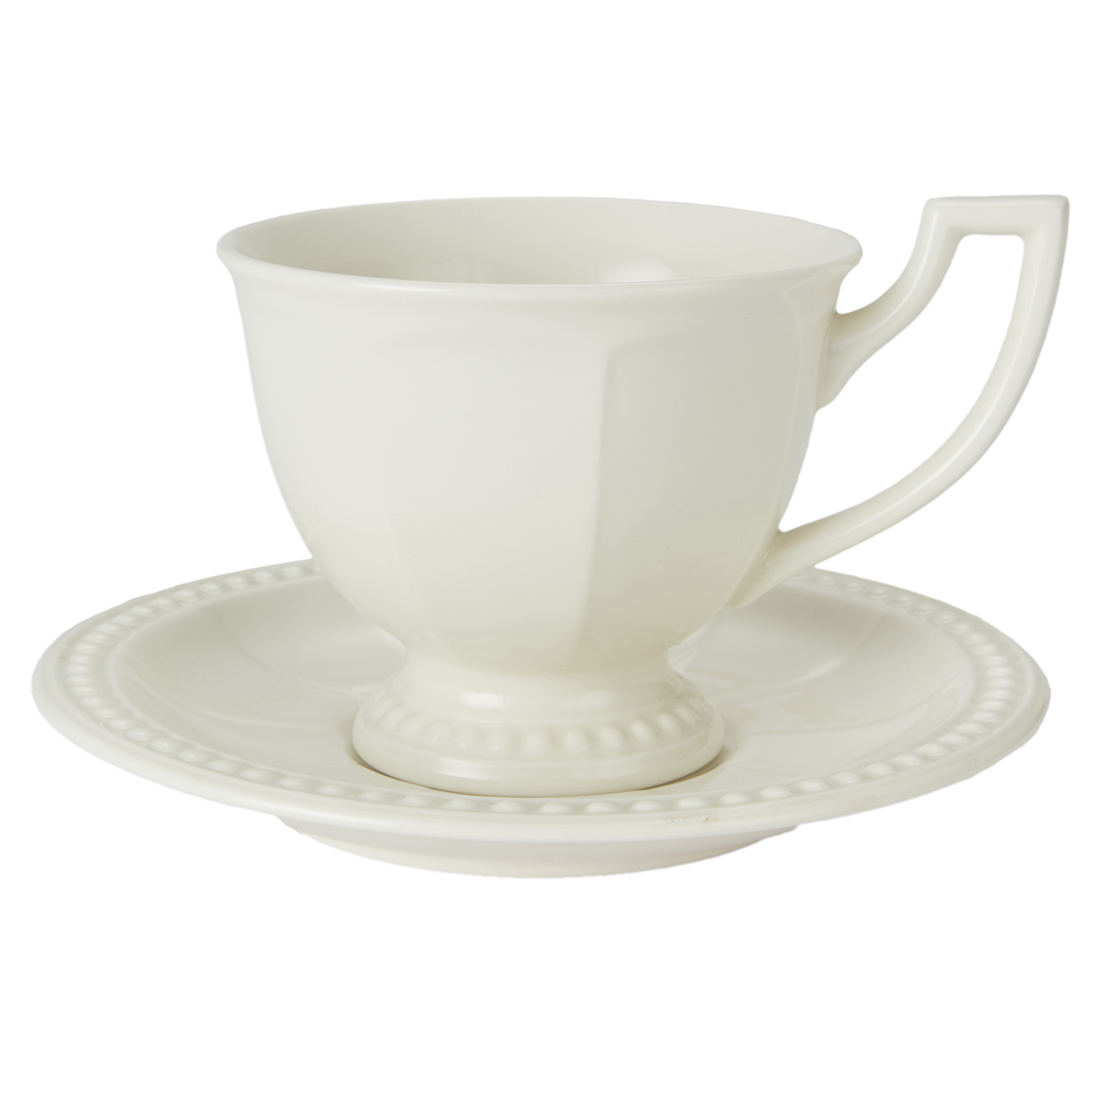 Florence Tea Cup & Saucer Ceramic Cups & Saucers in White With Gold Line Colour by Living Essence